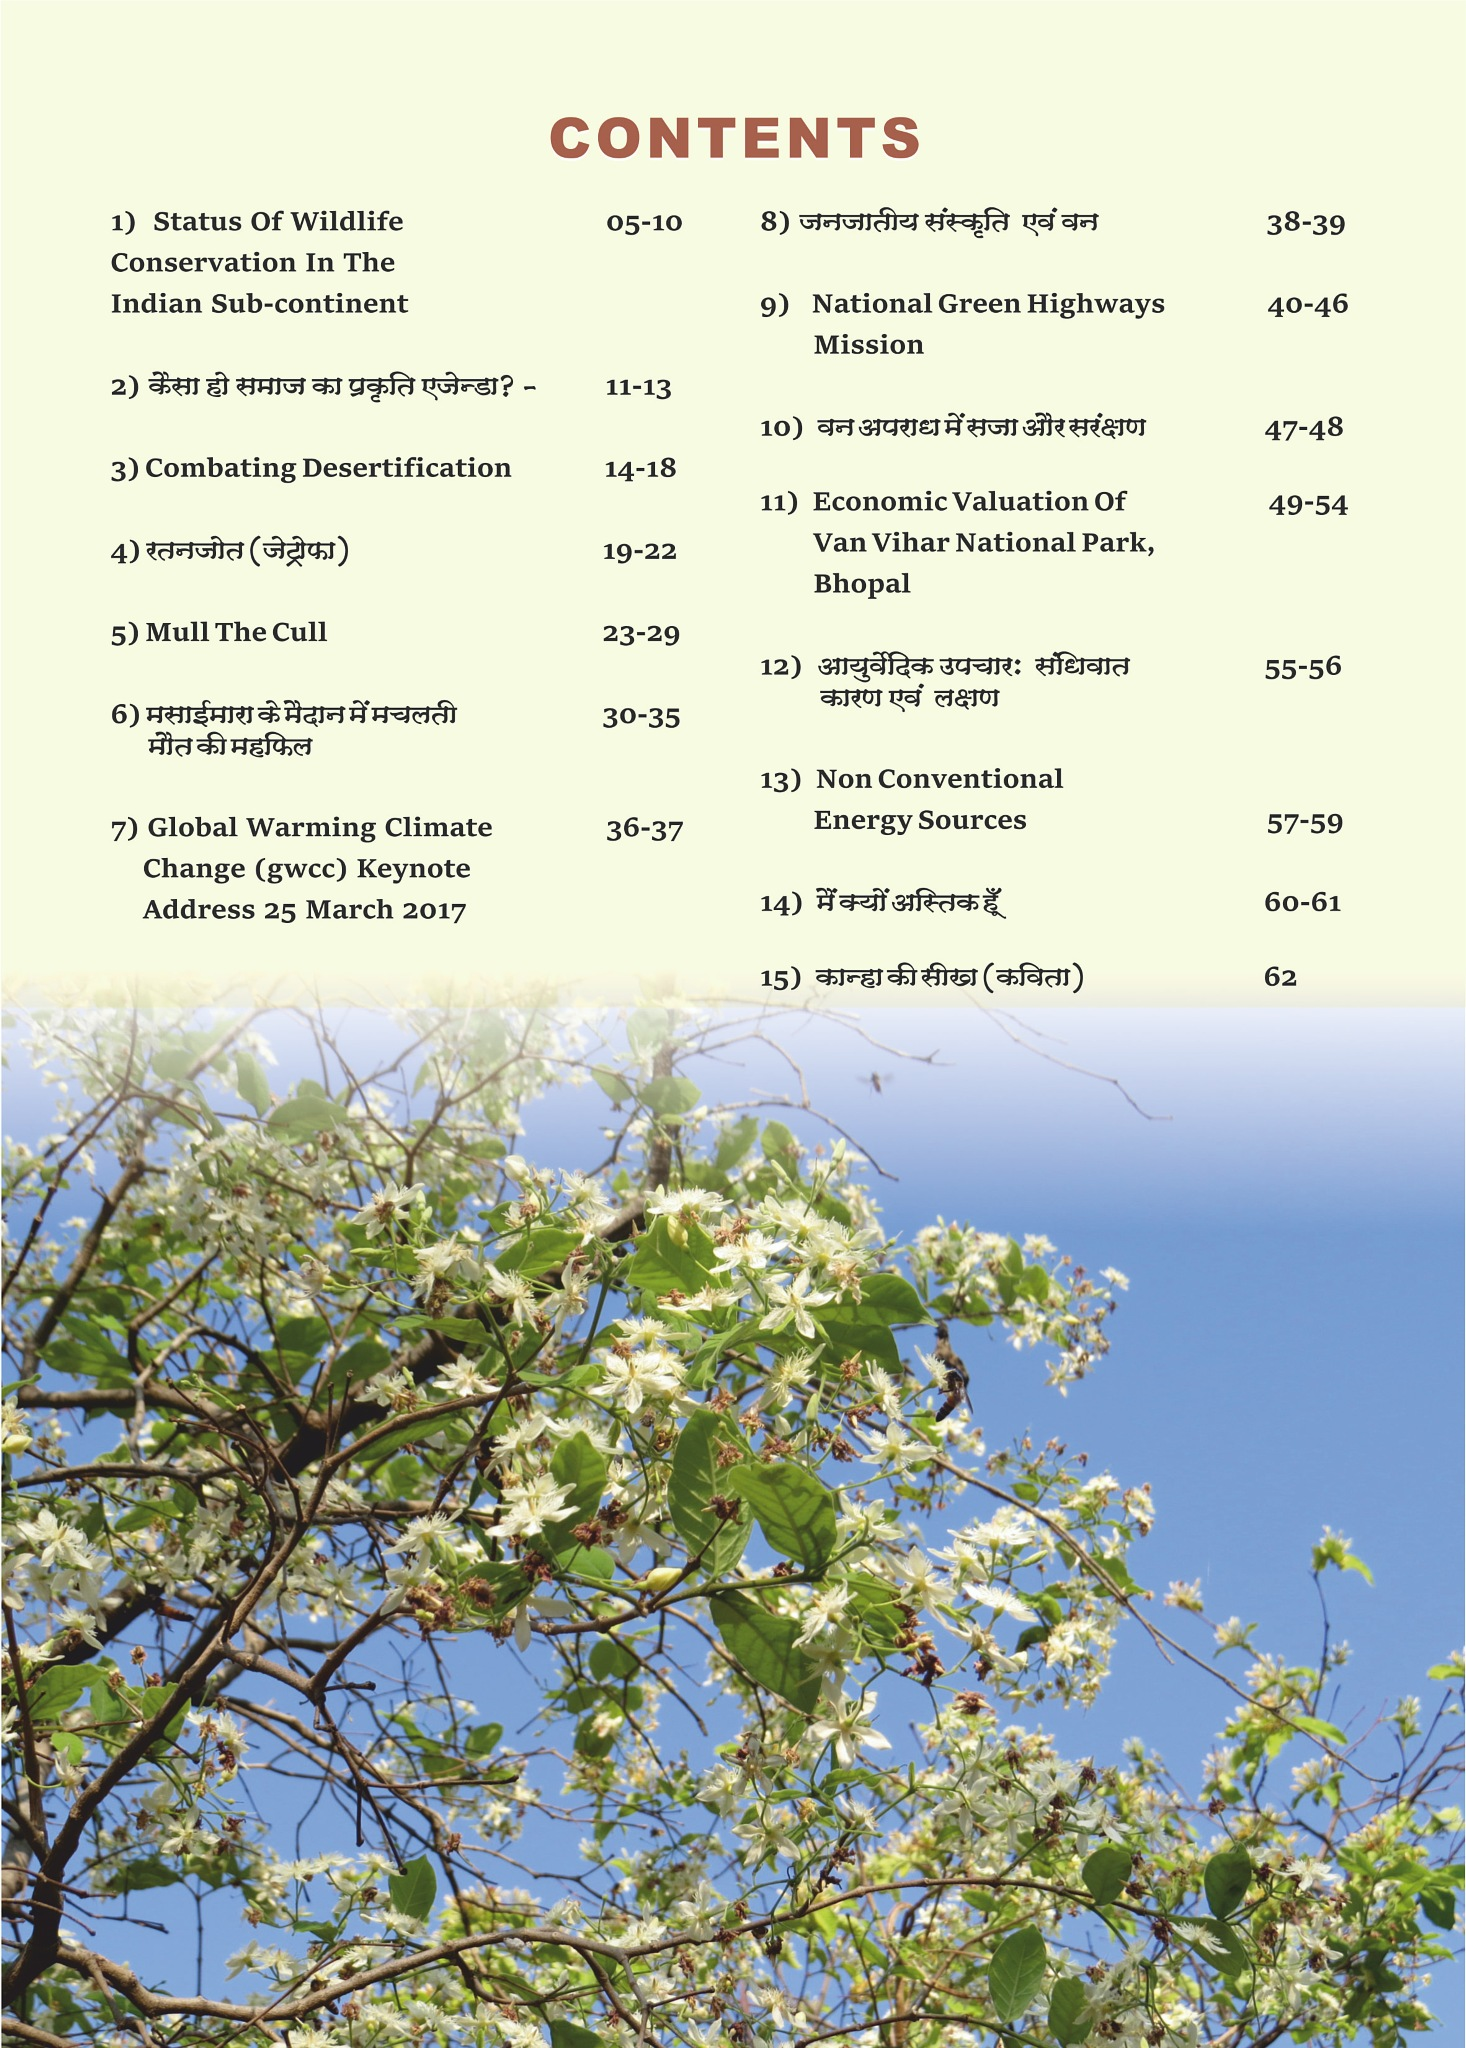 Contents of the magazine by Jagdish Chandra